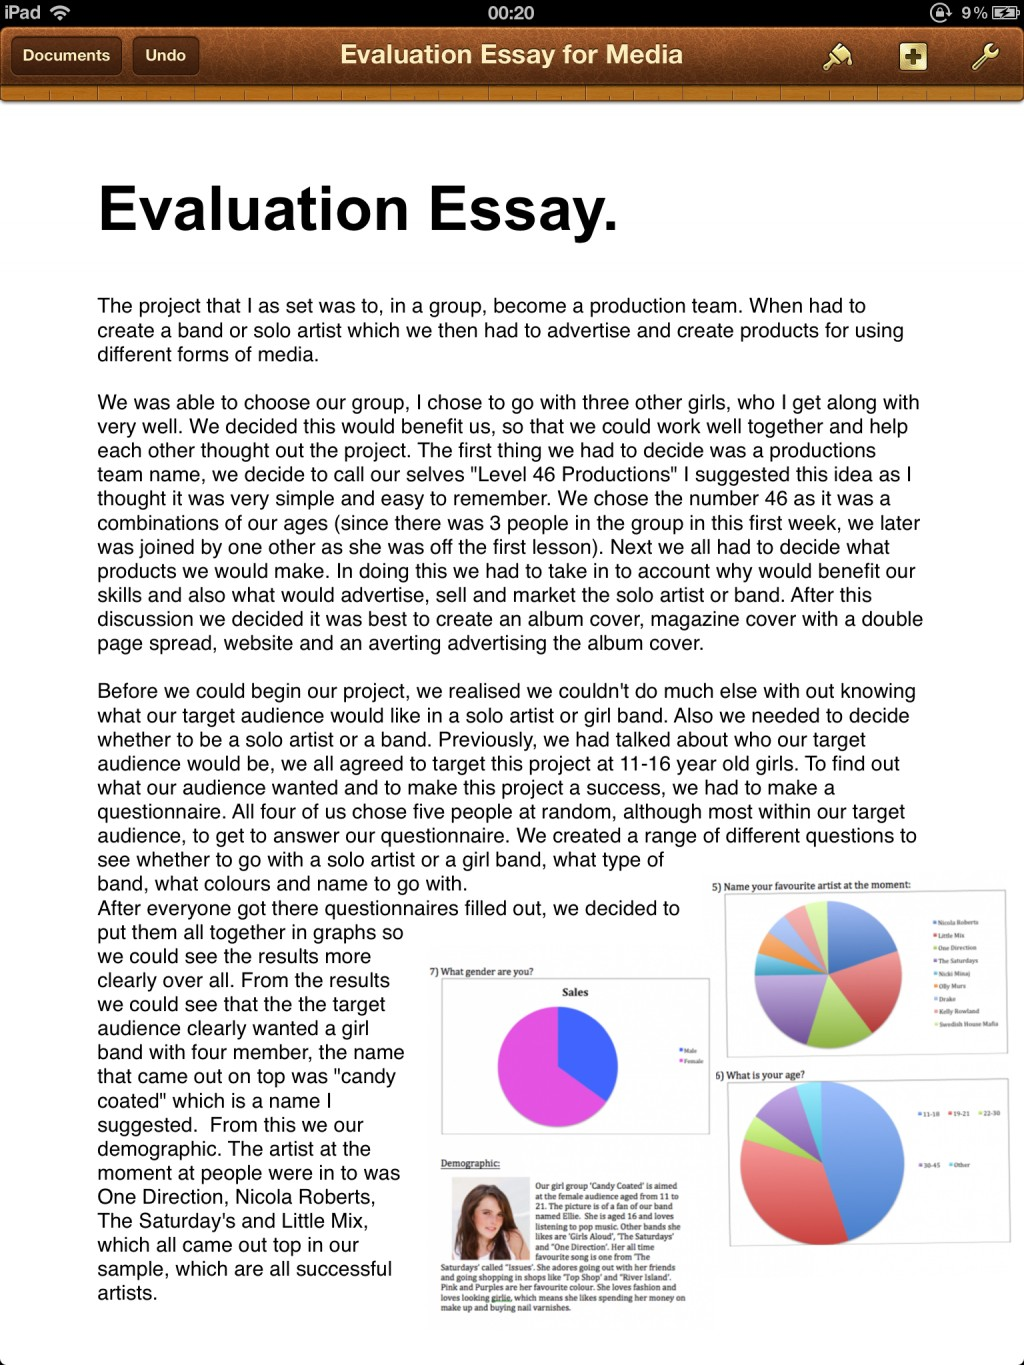 015 How To Write An Evaluation Essay Pg Outstanding A Self Sample Critical Psychology On Product Large